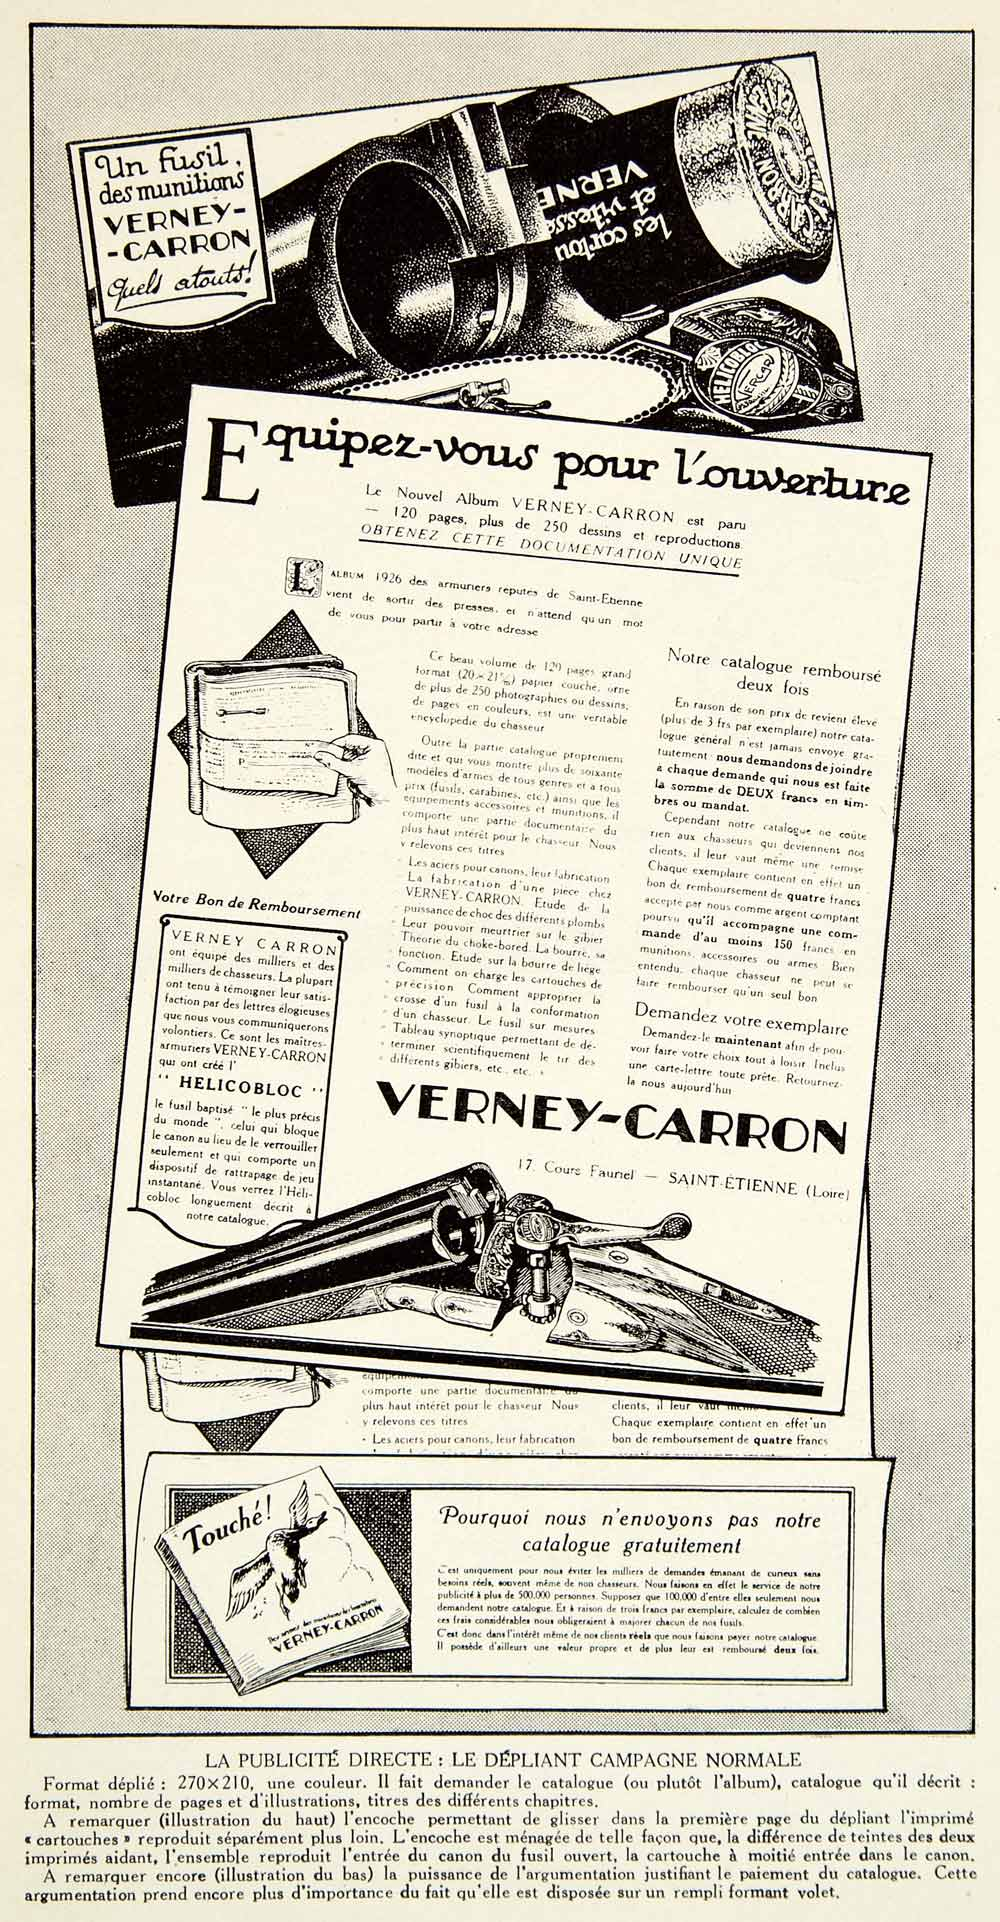 1927 Print Verney-Carron 17 Cours Fauriel Saint-Etienne Gun Rifle French VENA3